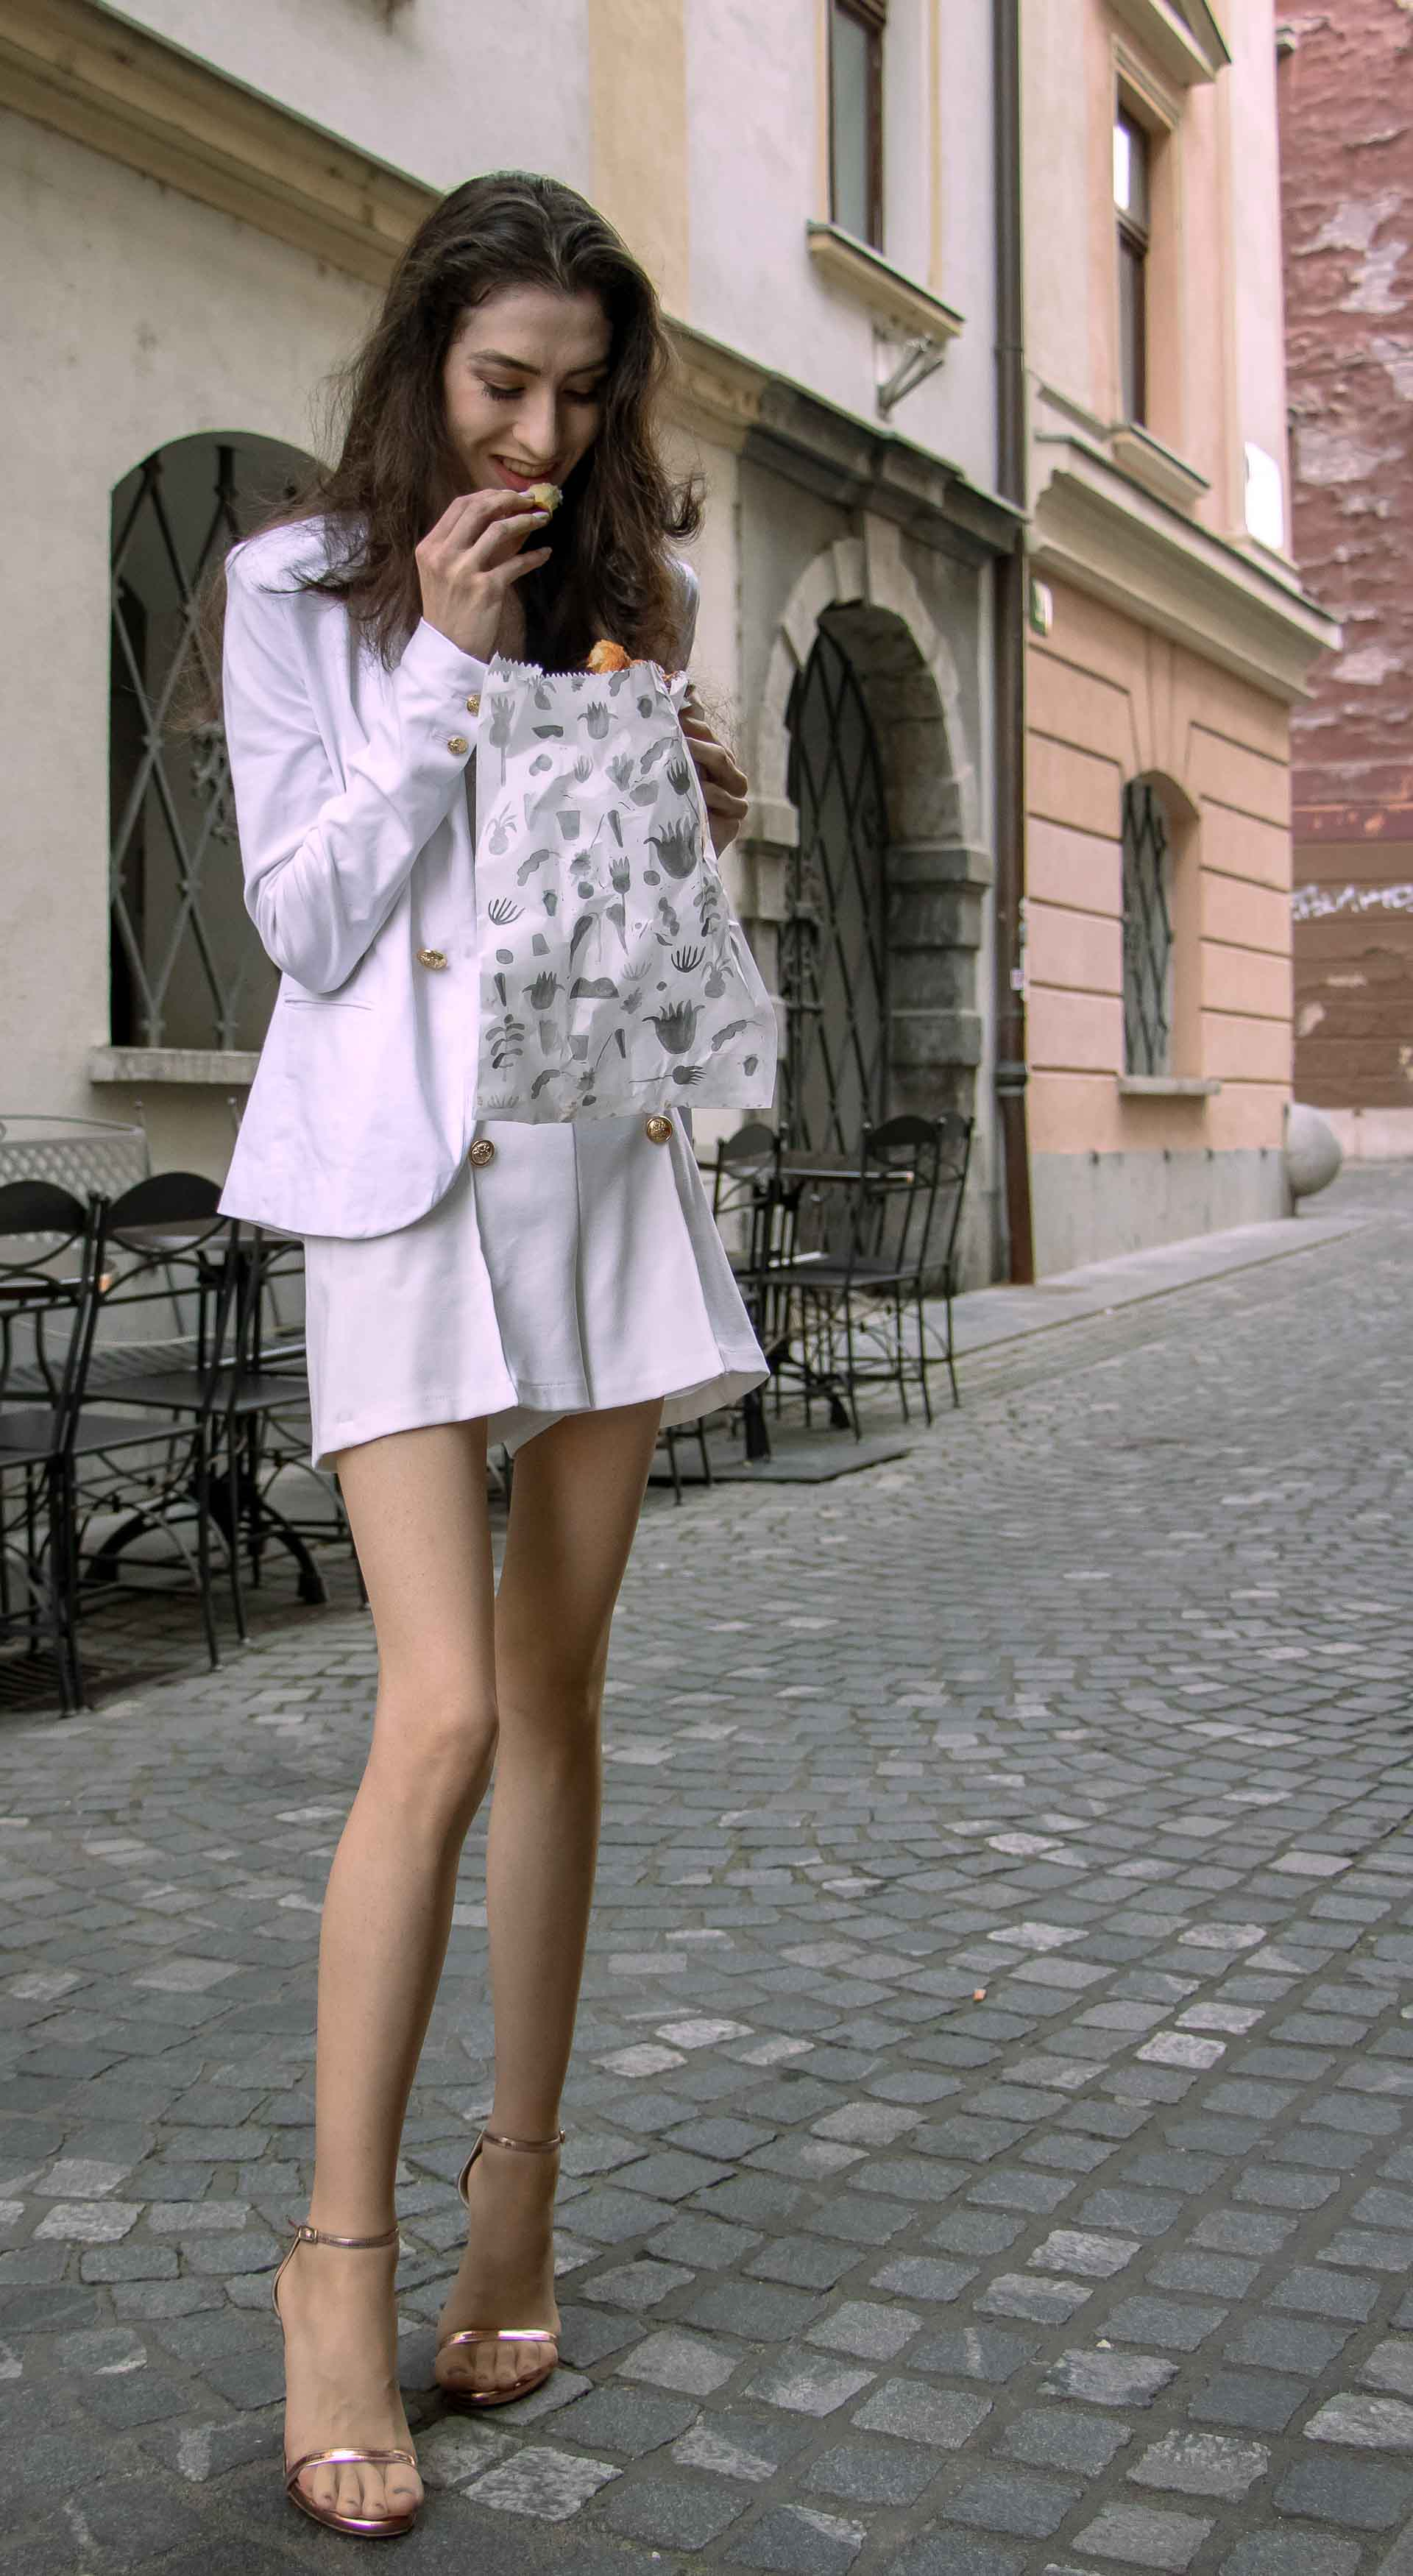 Beautiful Slovenian Fashion Blogger Veronika Lipar of Brunette from Wall dressed in all in white suit, white blazer, white tailored shorts, Stuart Weitzman high shine metallic nudist song sandals, shoulder bag while eating a croissant on the street in the morning after night out